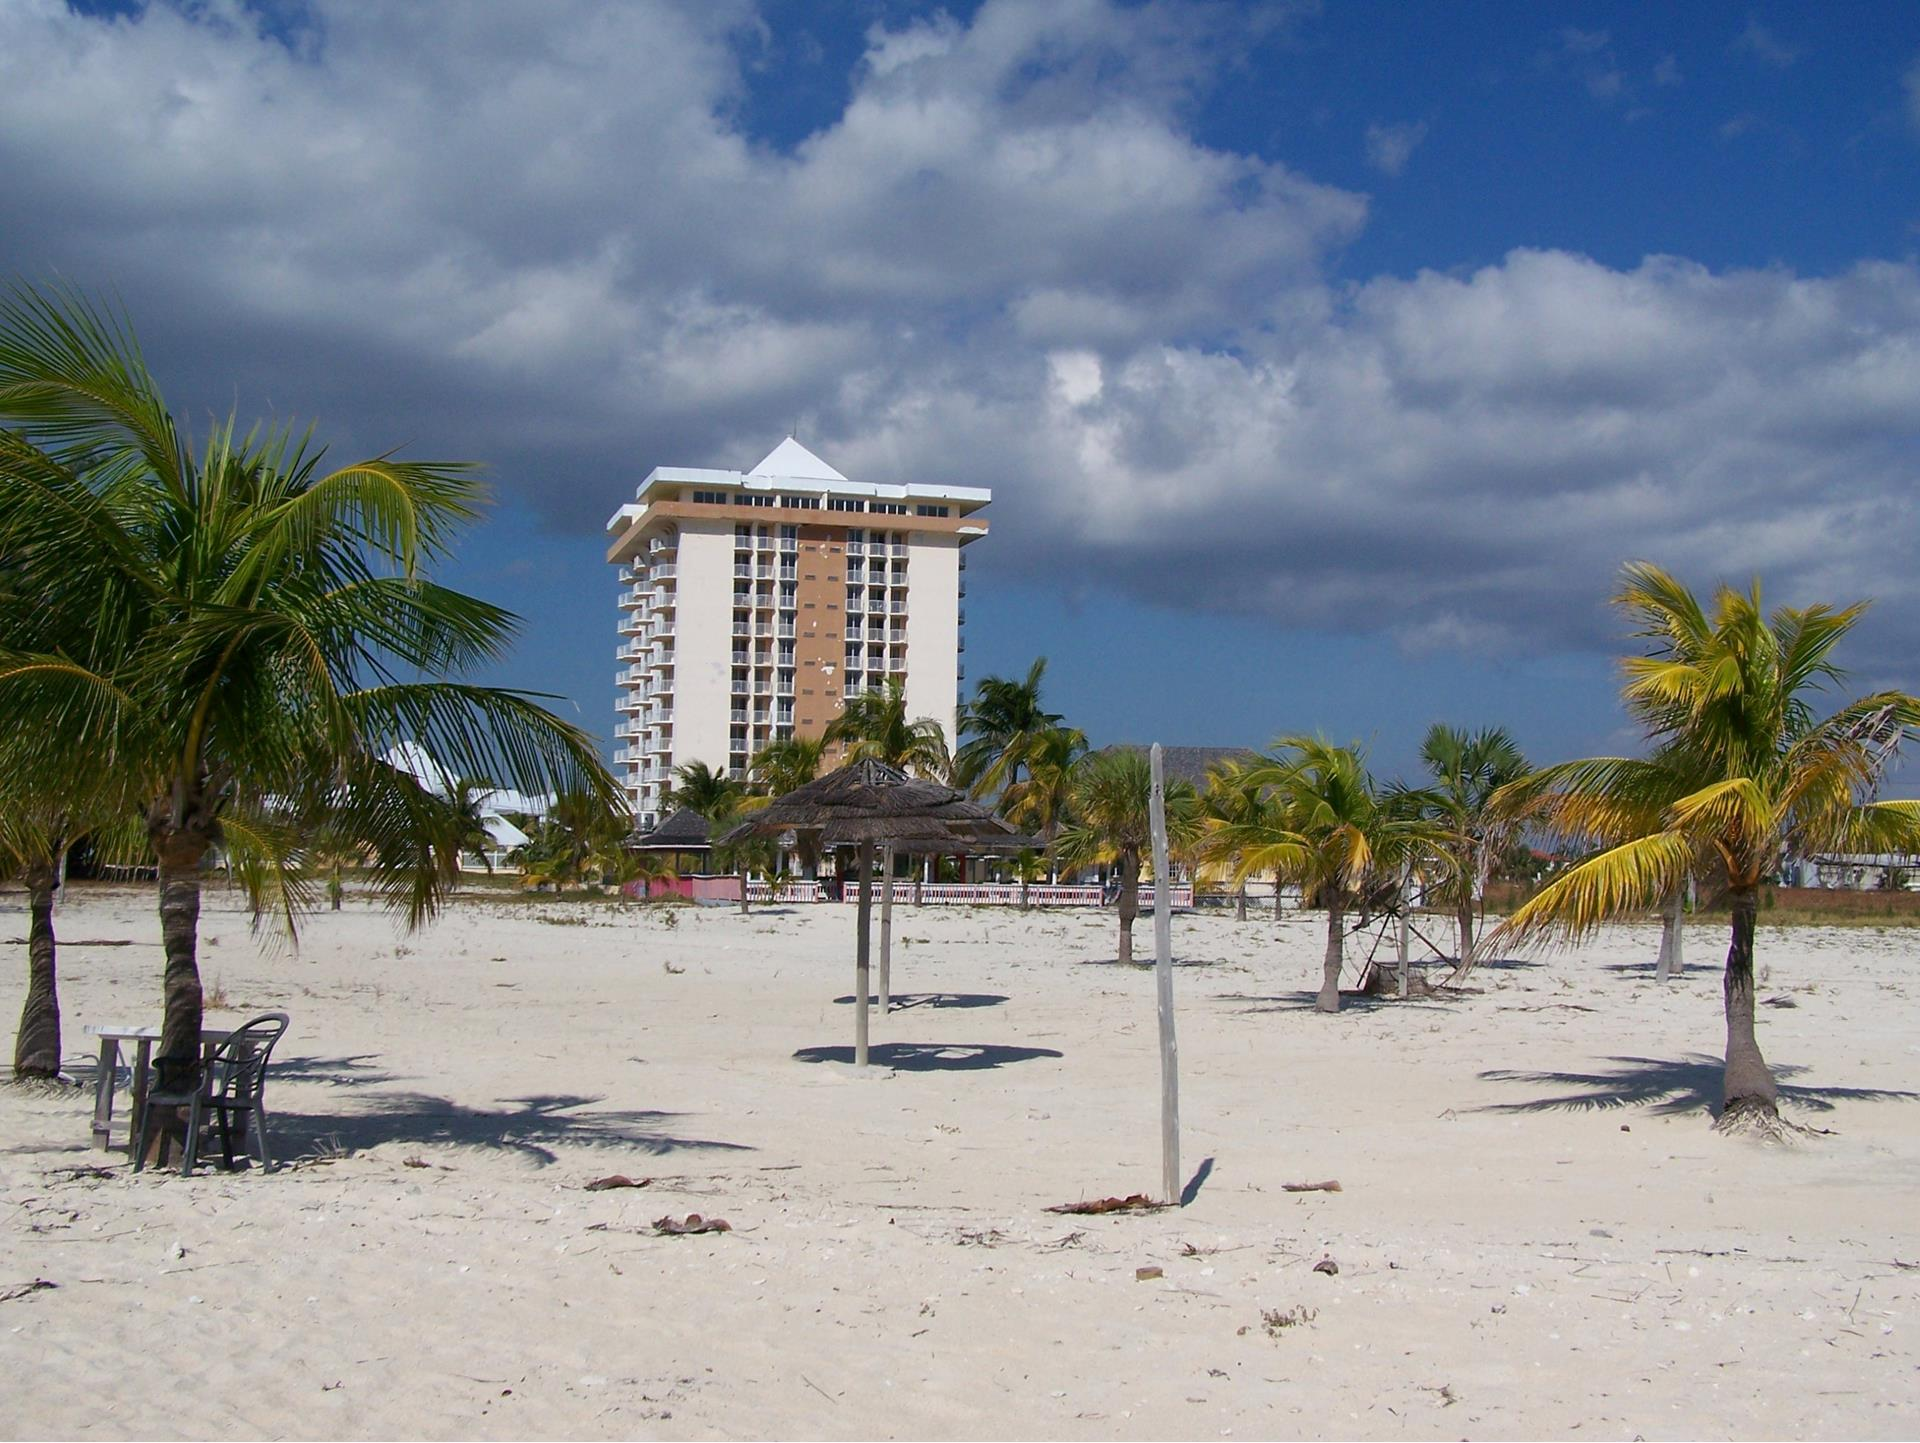 The Xanadu Beach Resort & Yacht Marina, Freeport, Bahamas